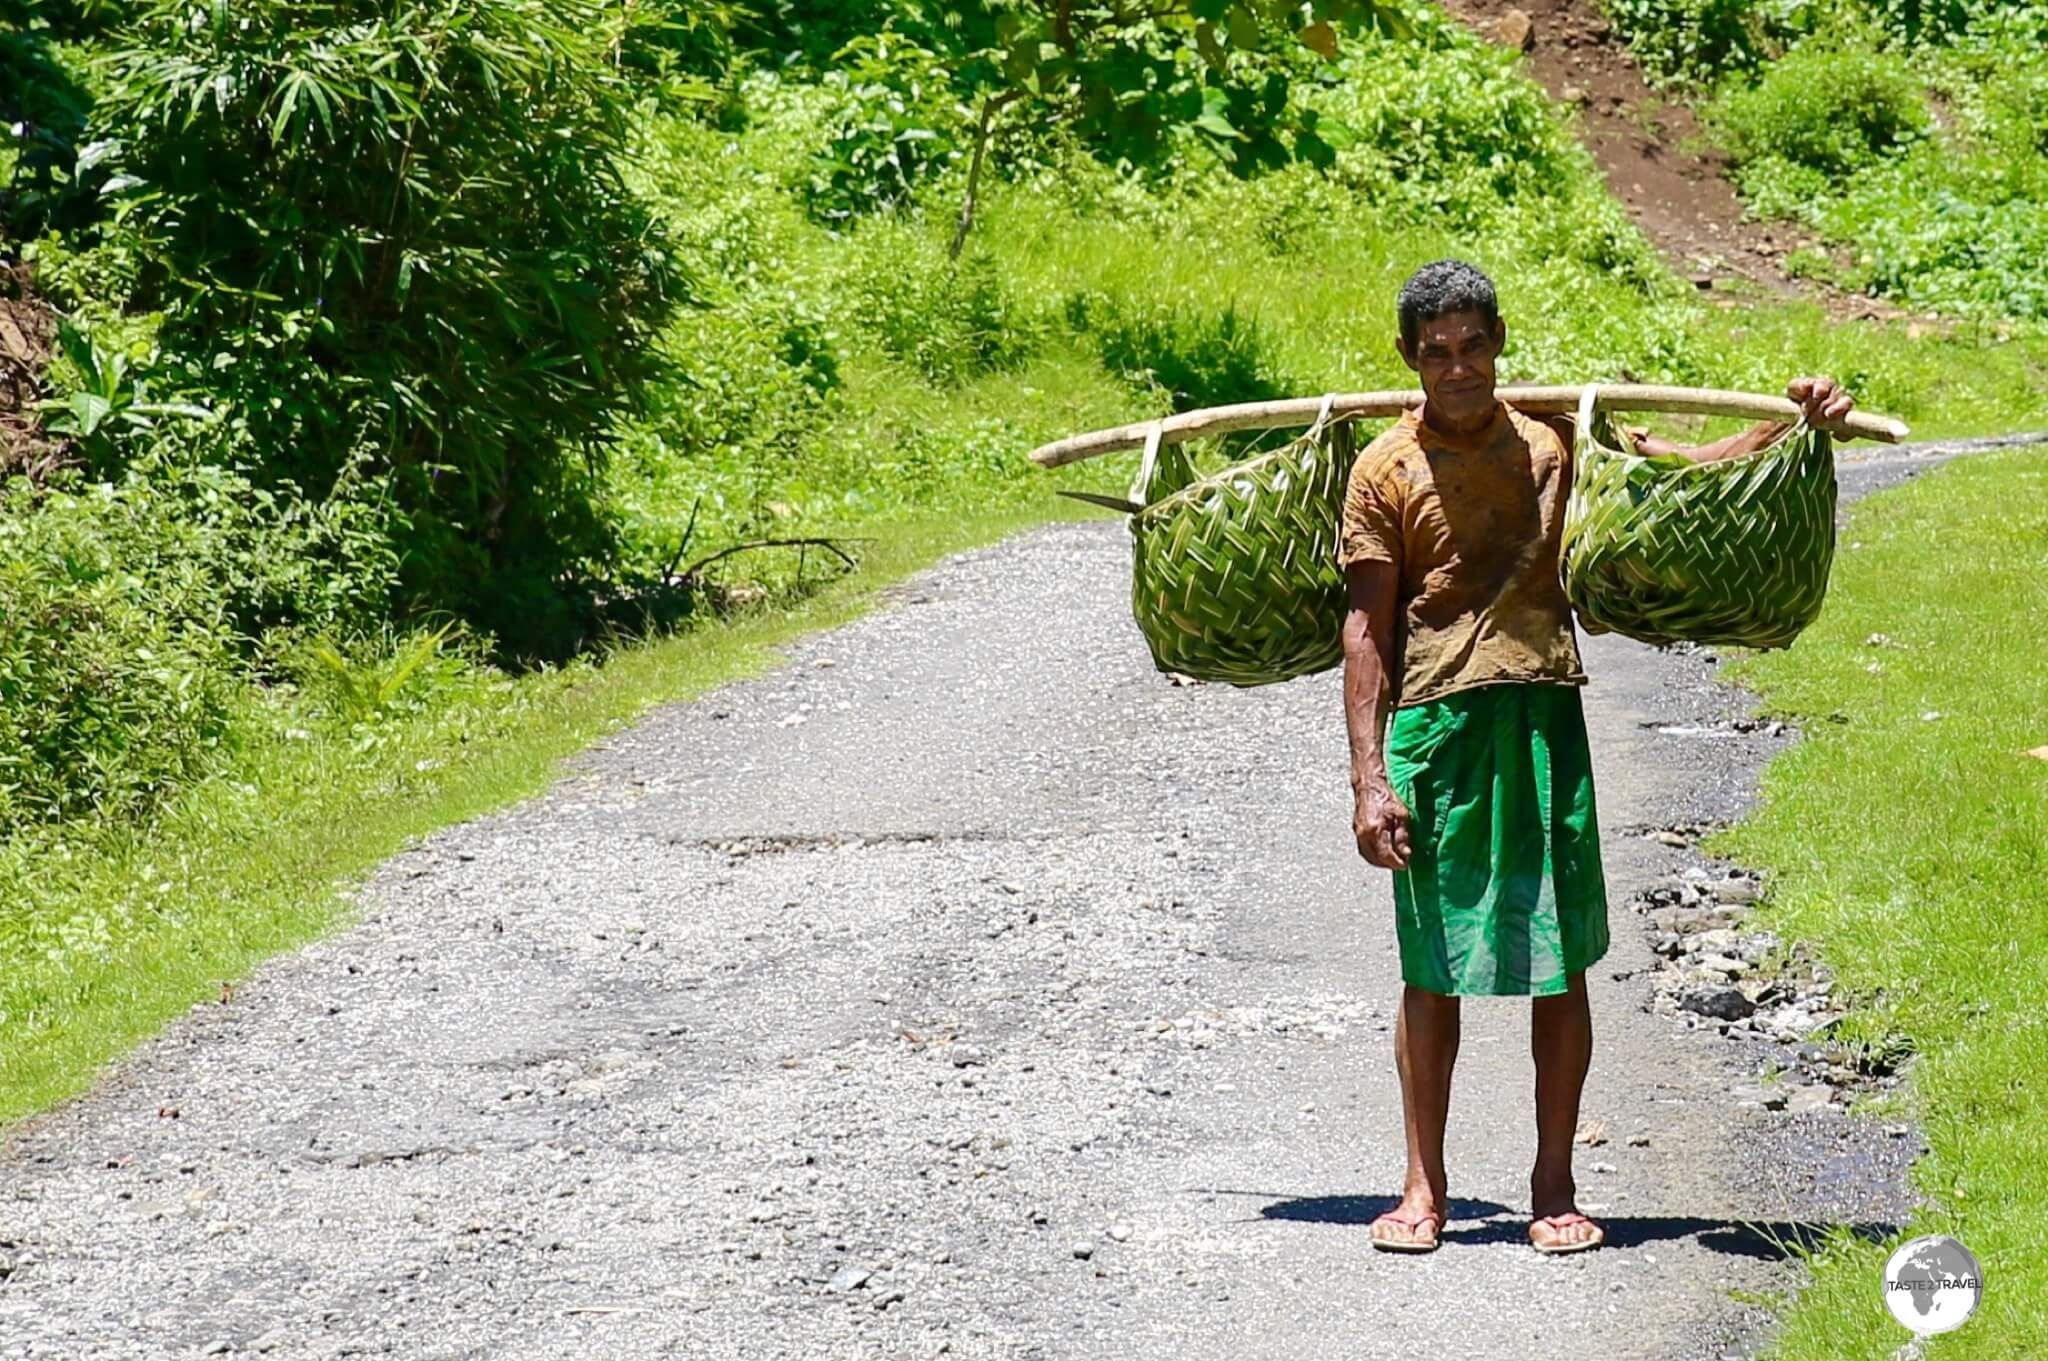 A villager from Saletele returning home with freshly picked bananas.